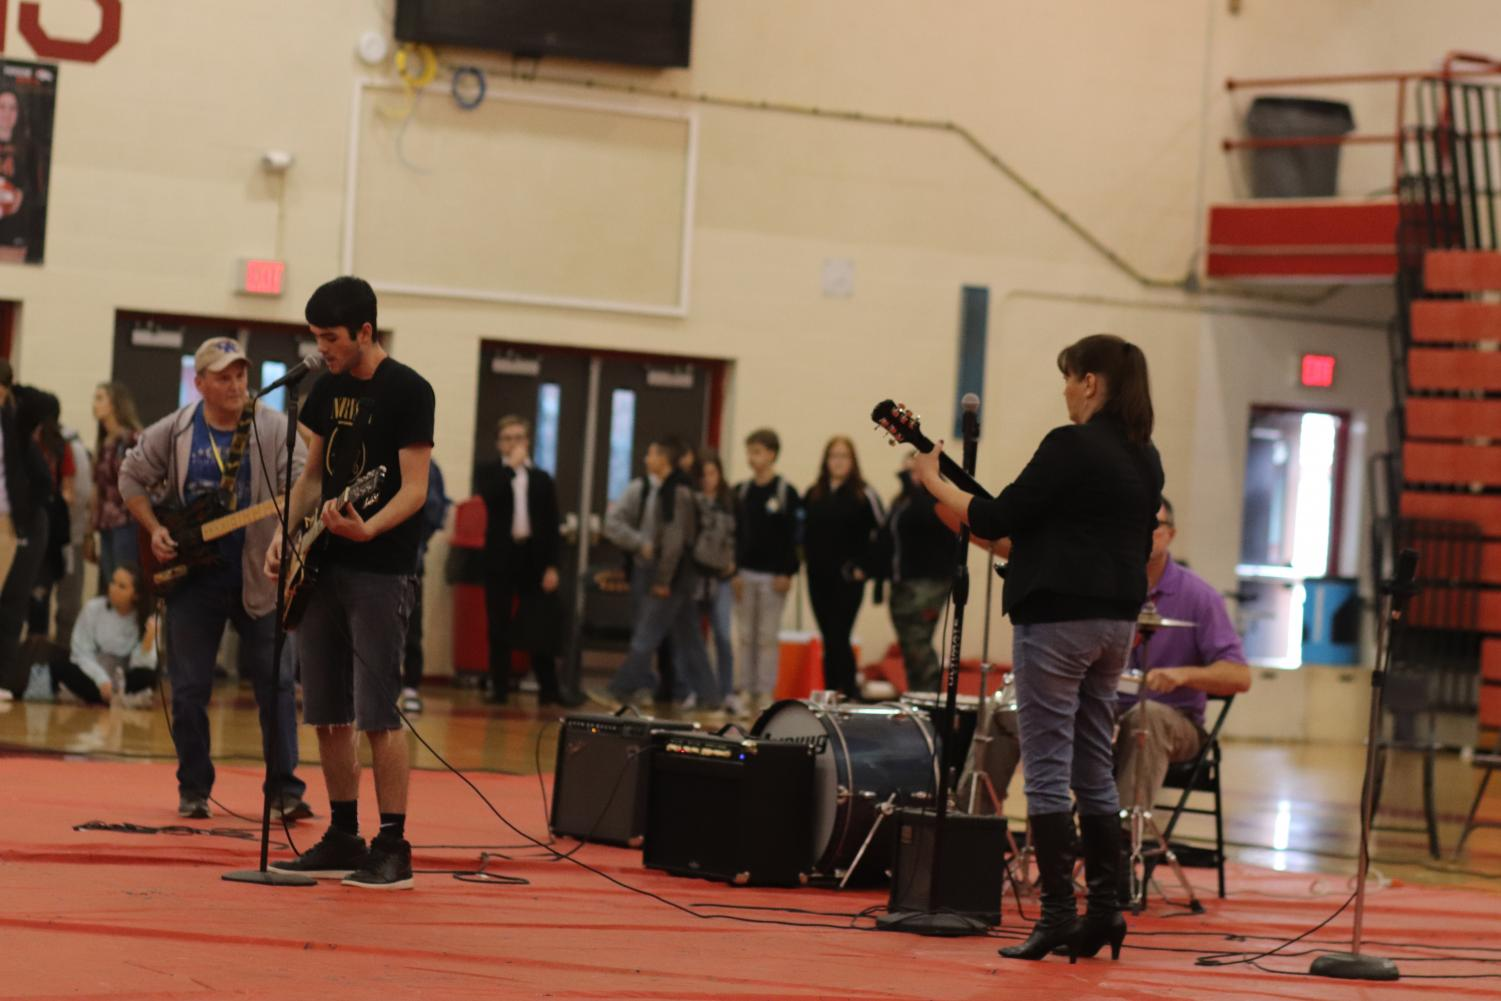 Social studies teacher Monty Edwards and his family used their musical talent to perform